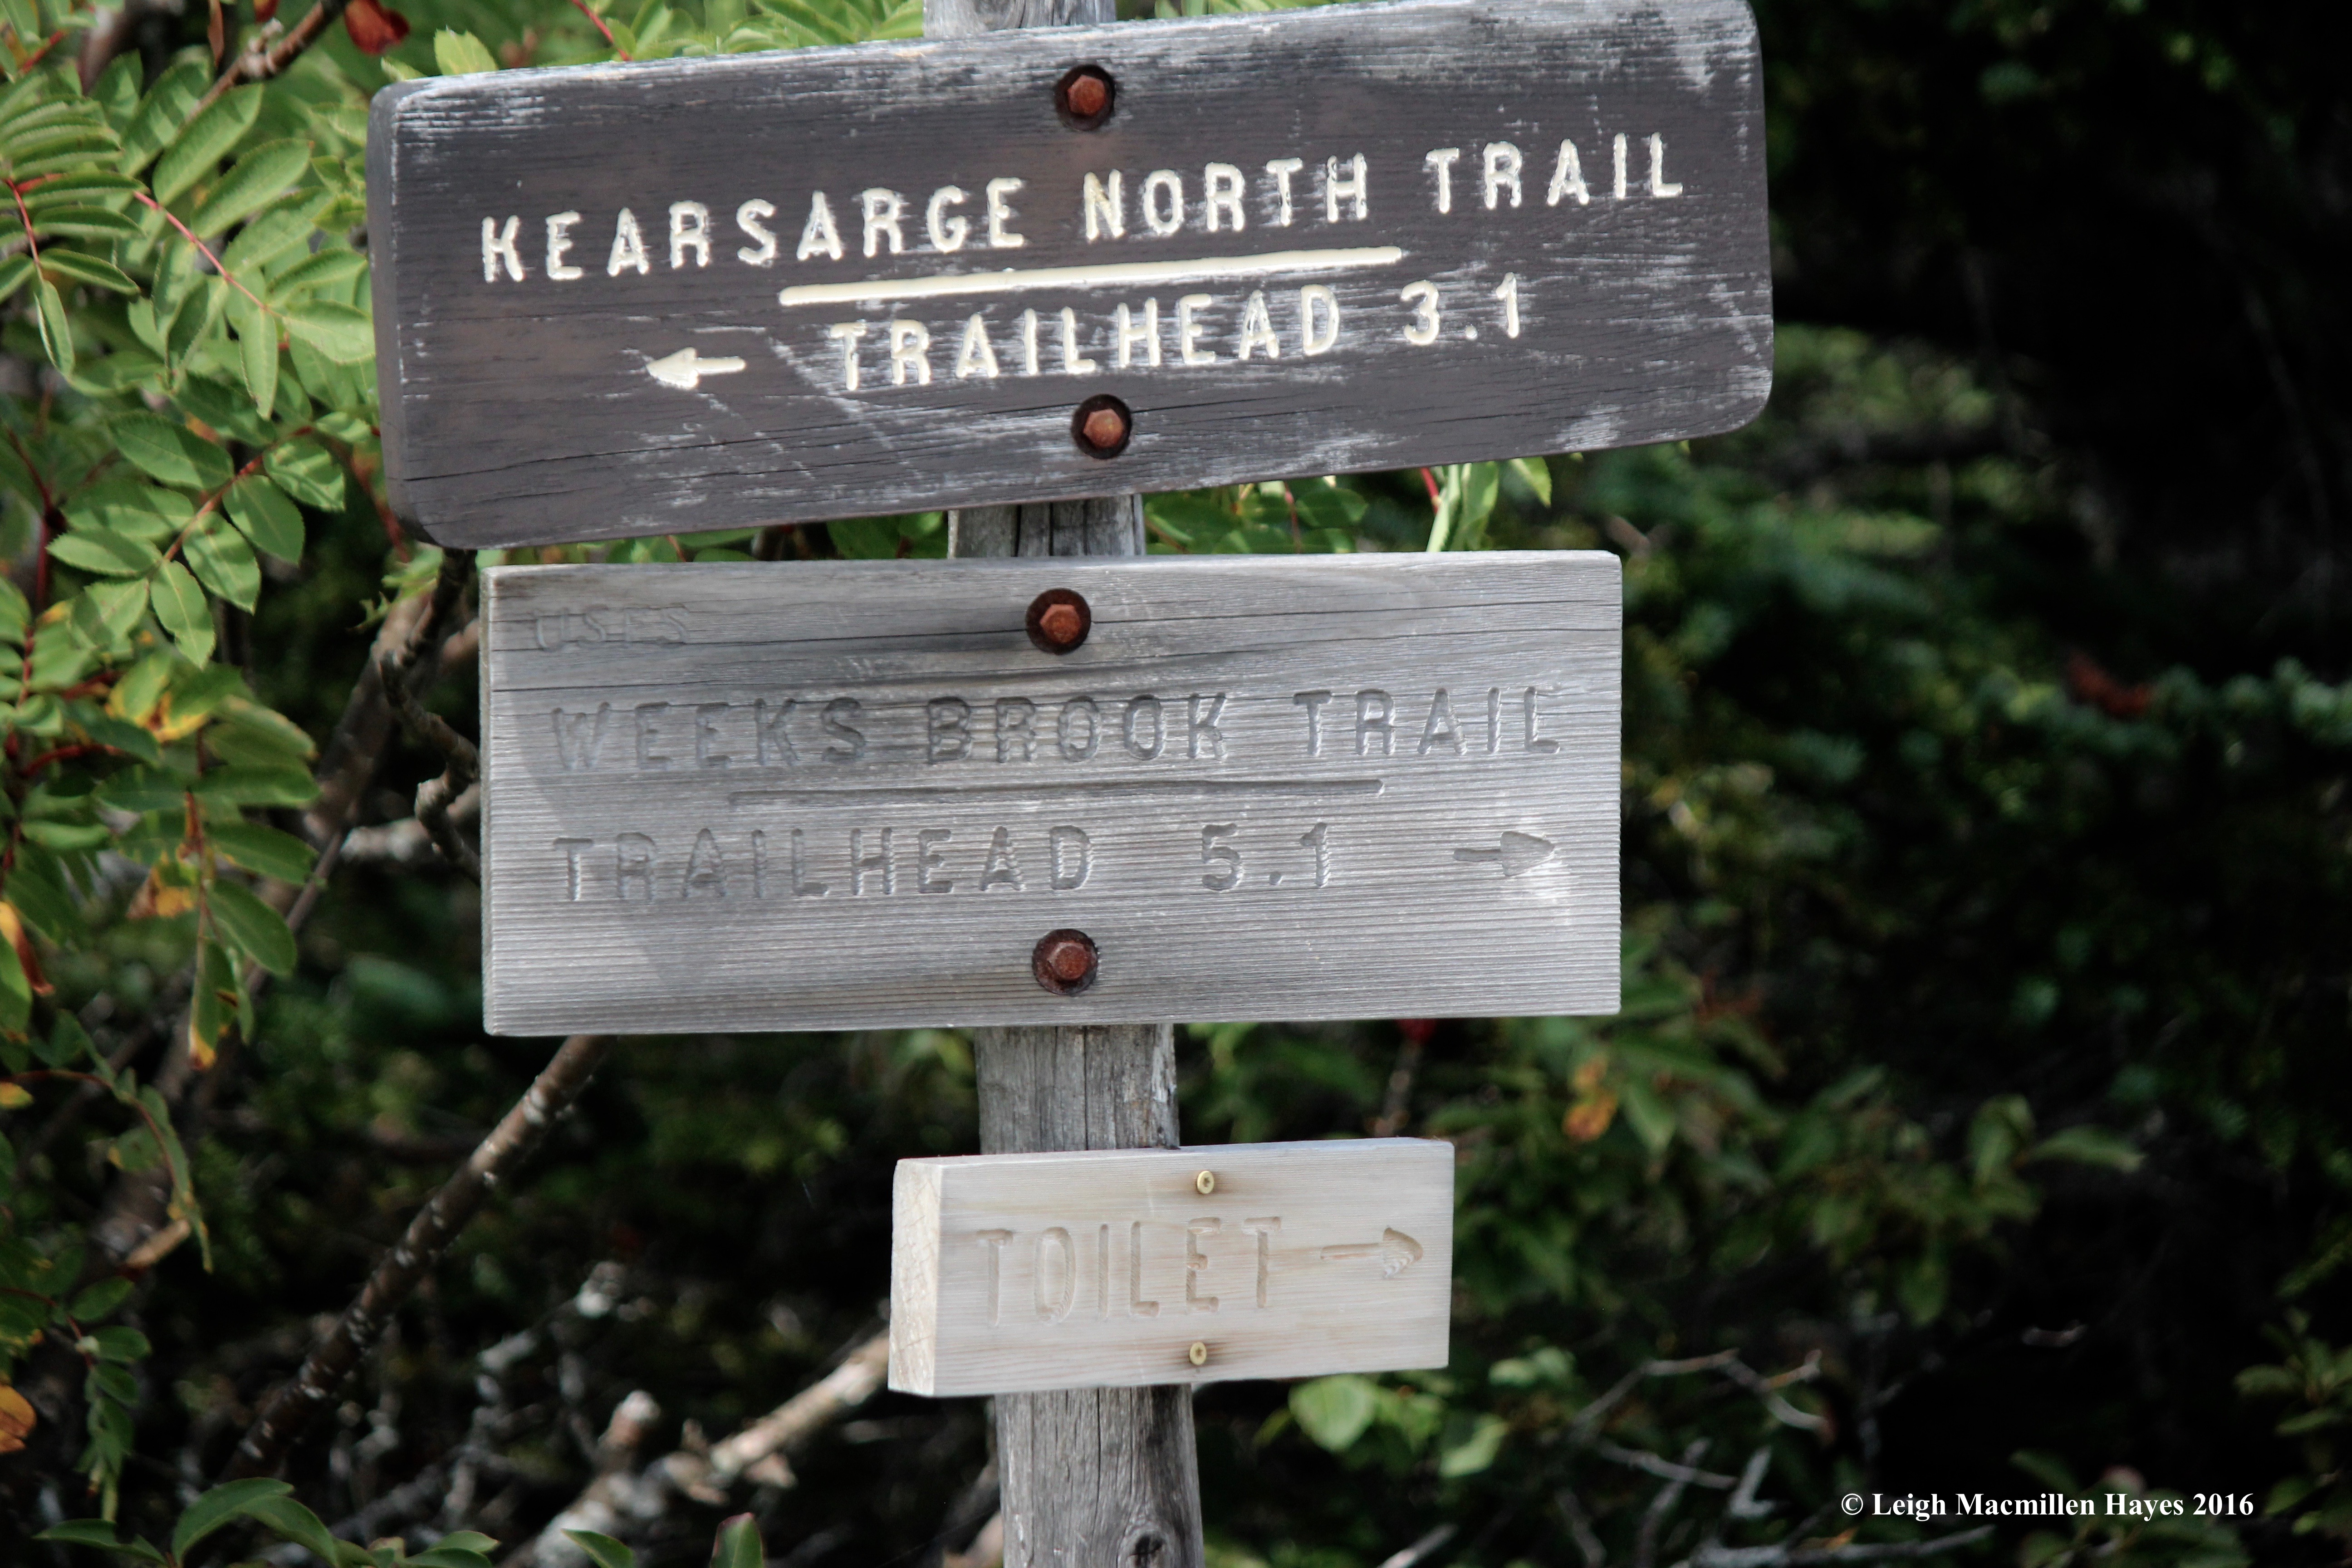 k-trail sign 2